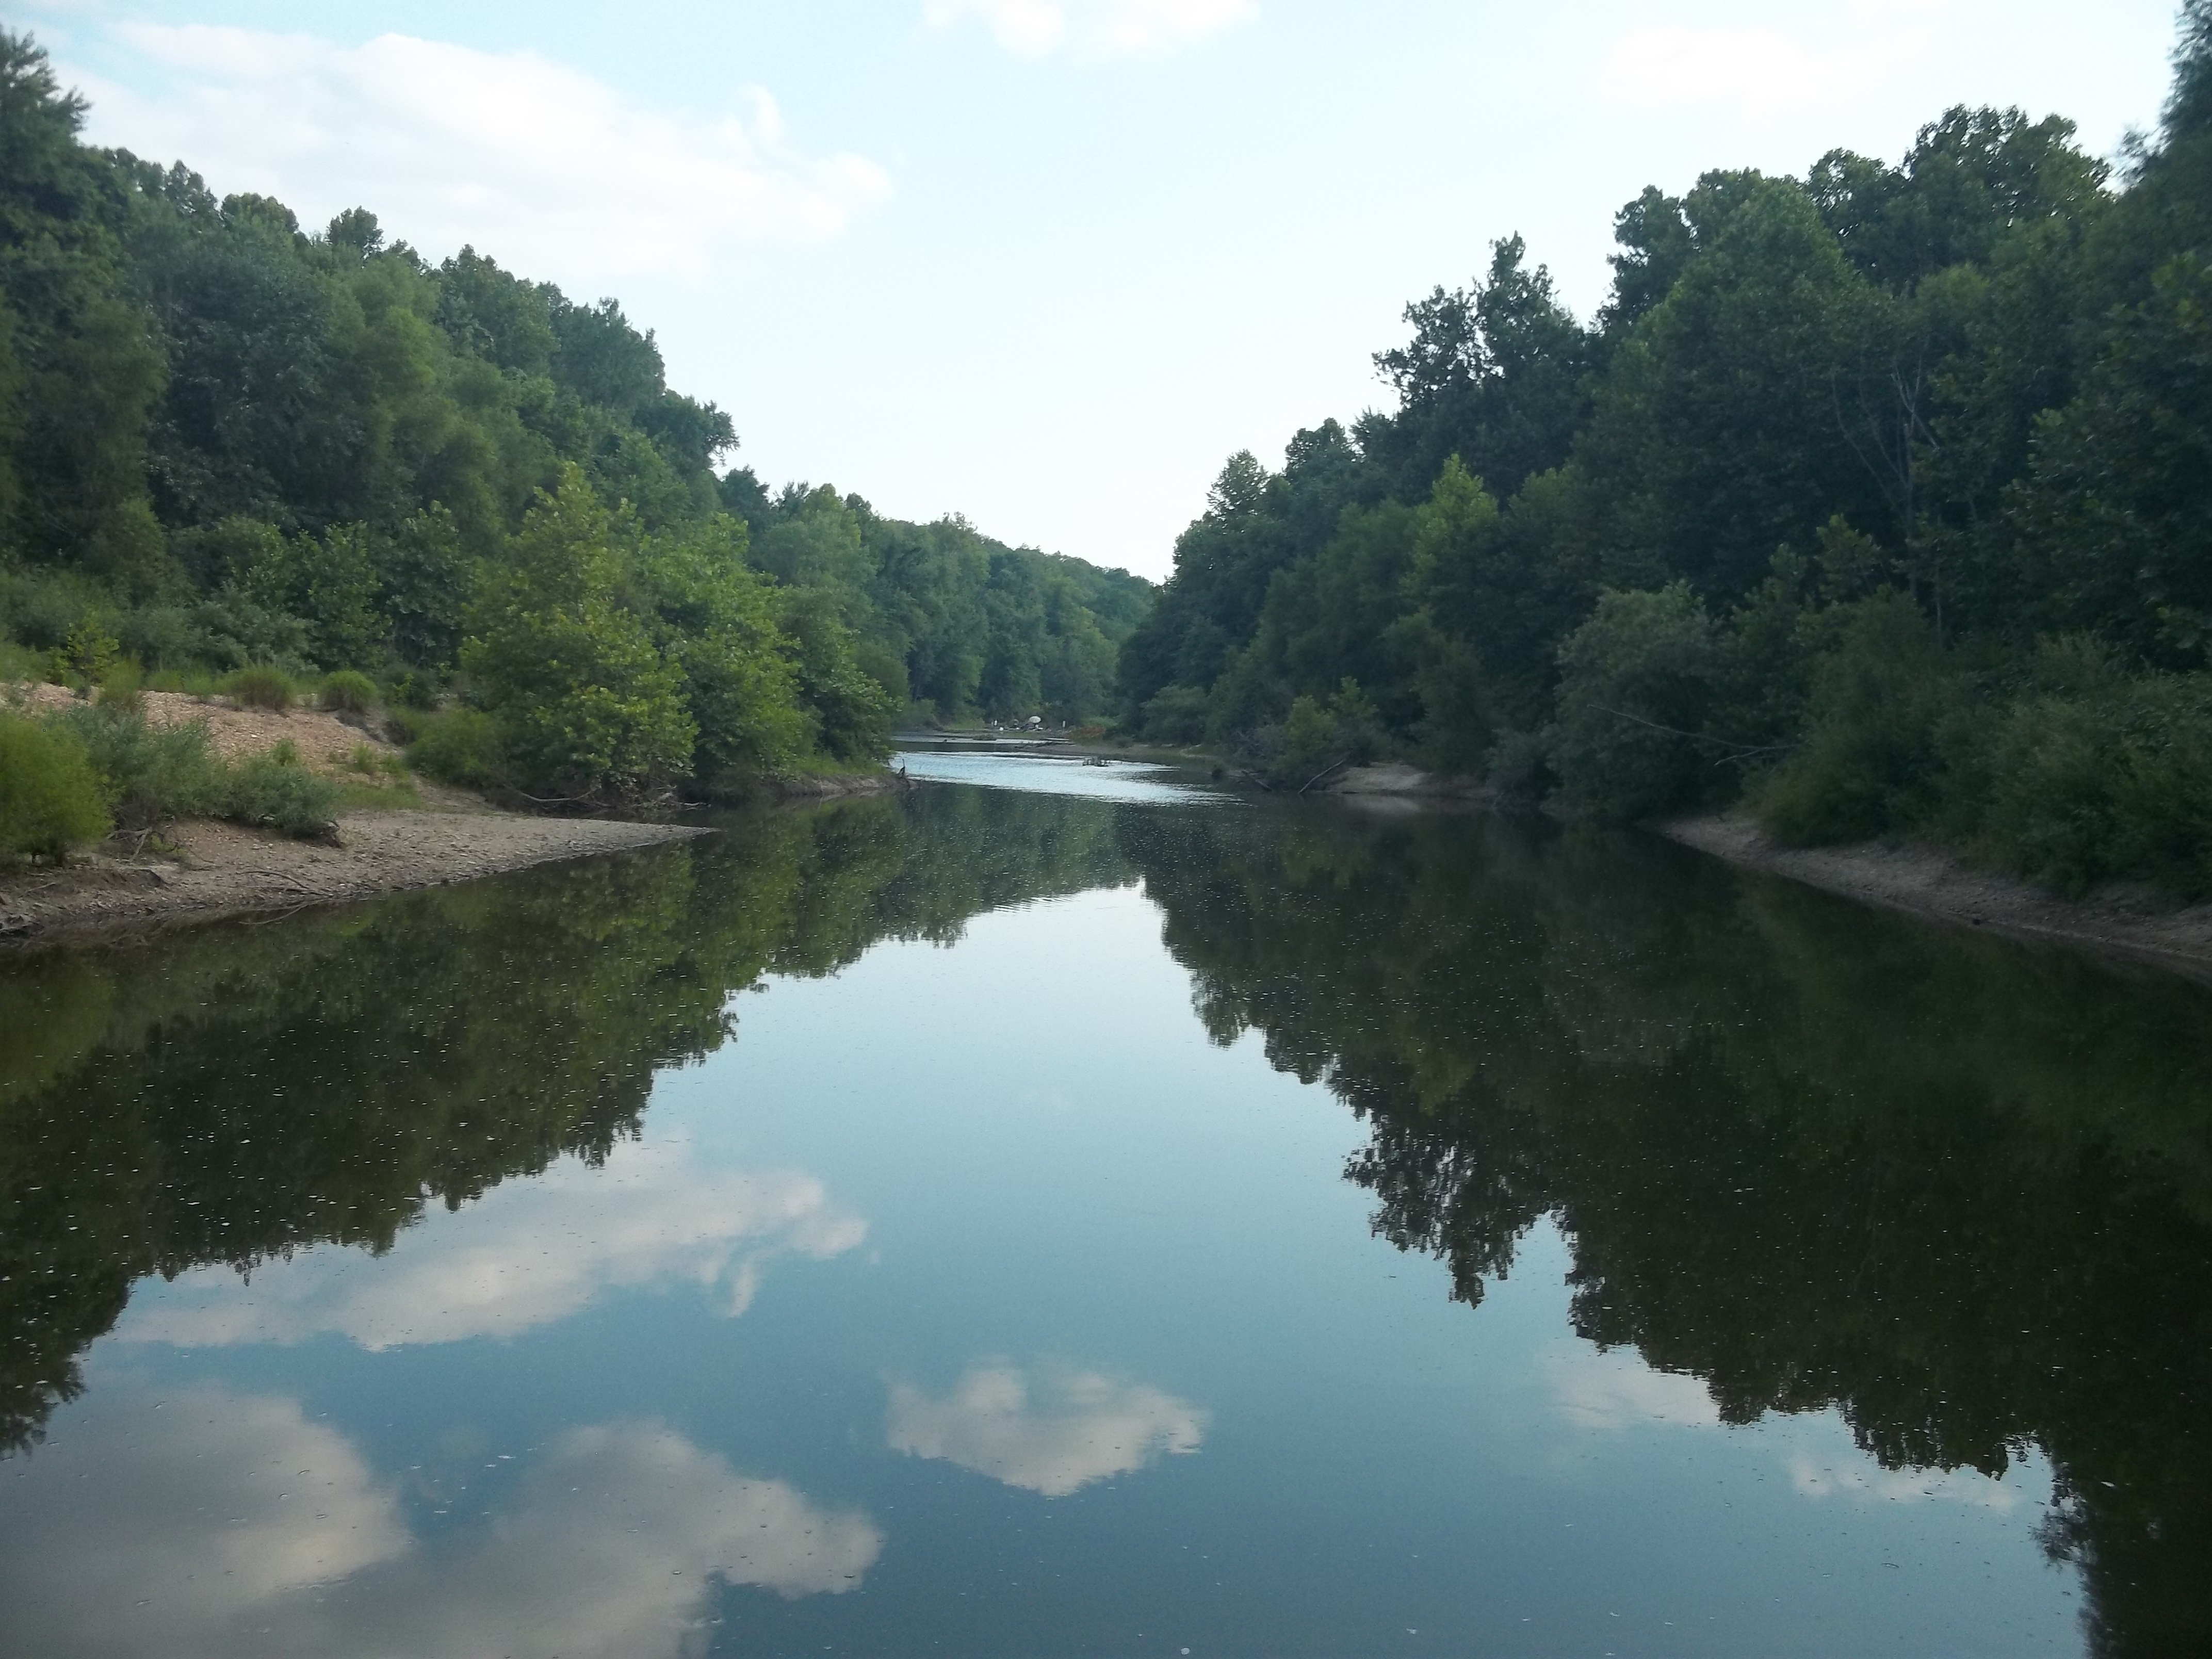 A pretty view upstream from a very good bass fishing pool.